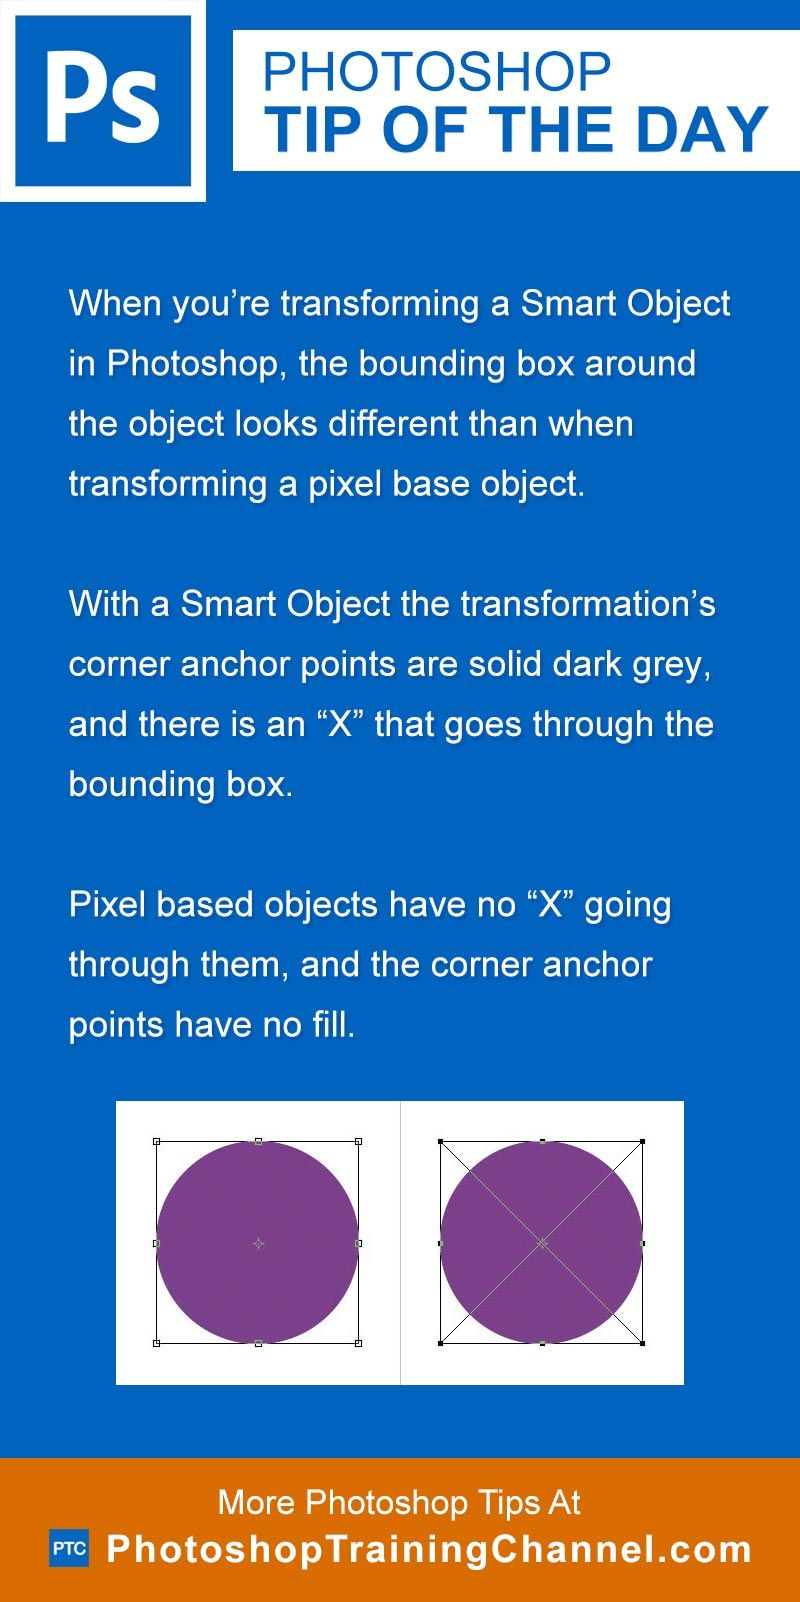 """When you're transforming a Smart Object in Photoshop, the bounding box around the object looks different than when transforming a pixel base object. With a Smart Object the transformation's corner anchor points are solid dark grey, and there is an """"x"""" that goes through the bounding box. Pixel based objects have no """"x"""" going through them, and the corner anchor points have no fill."""